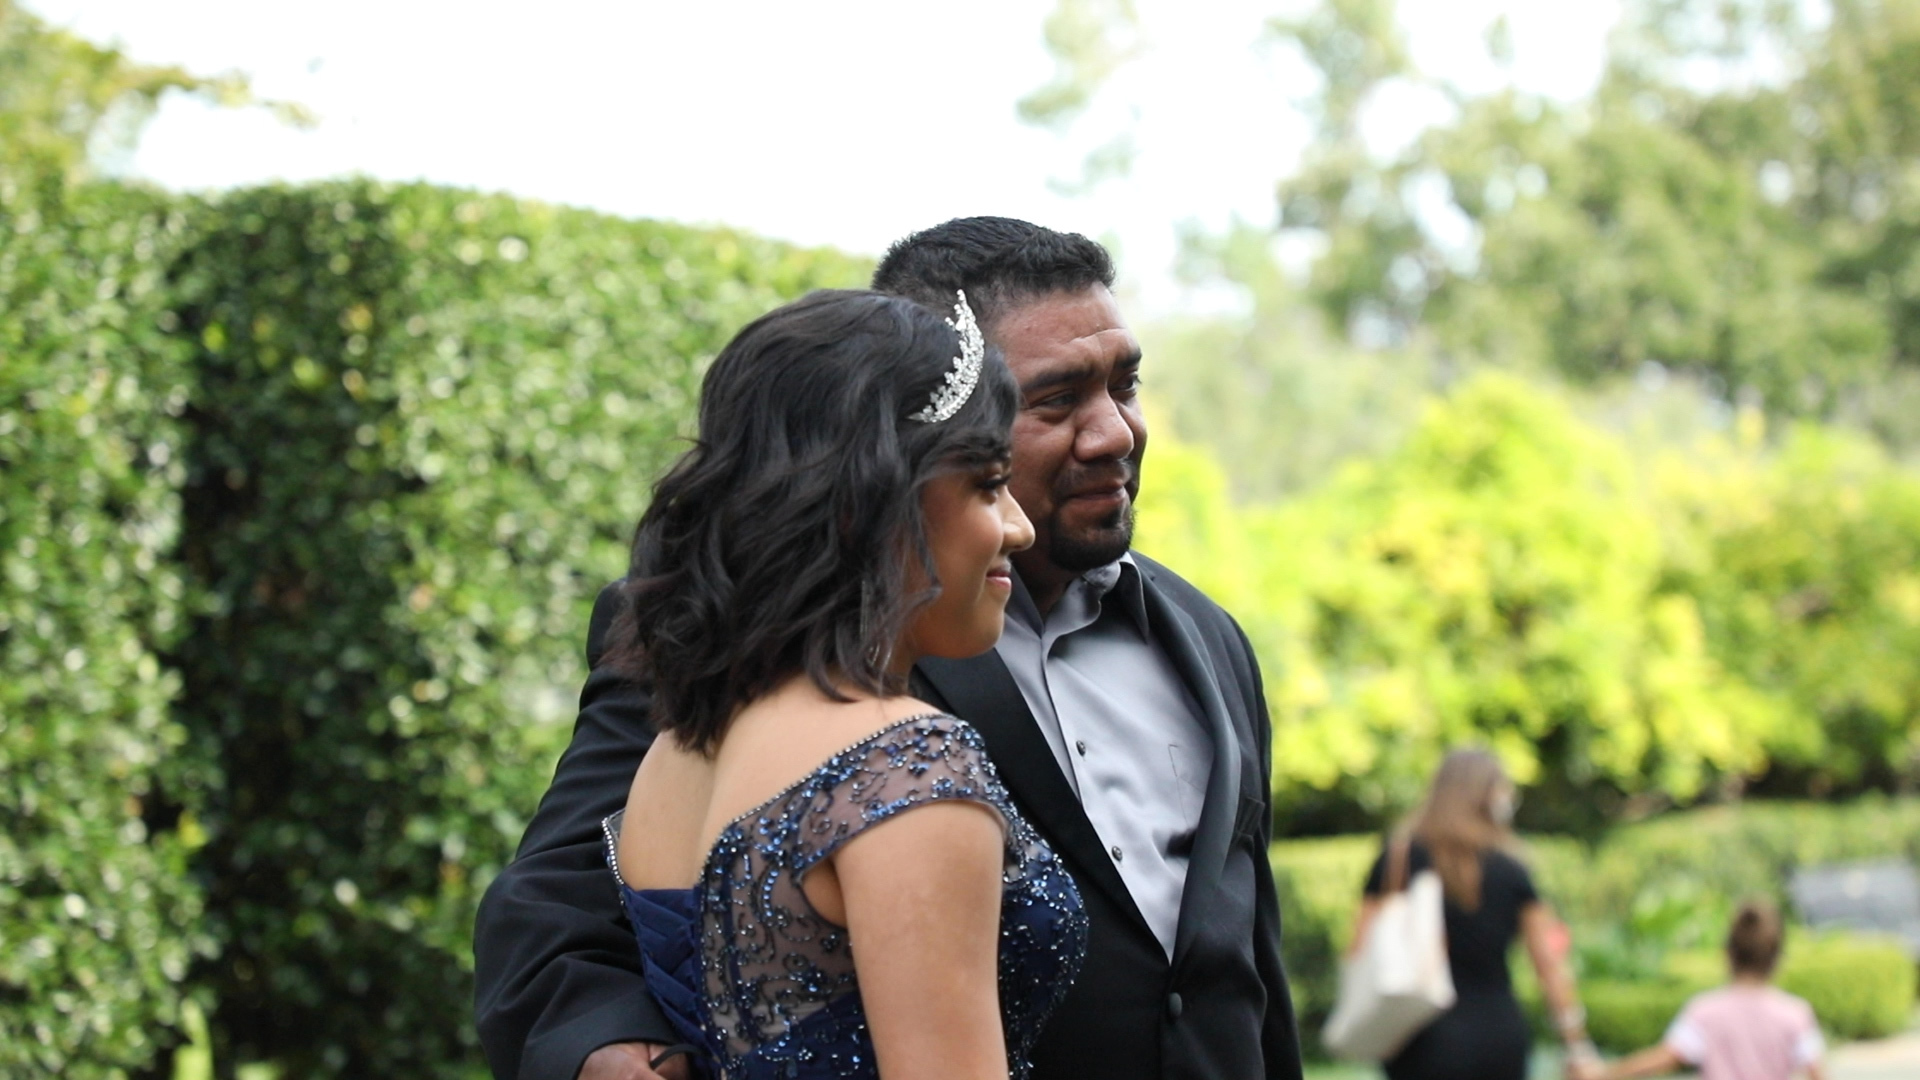 Yailin in her Quince dress posed with her father in a tux at the Dallas Arboretum.